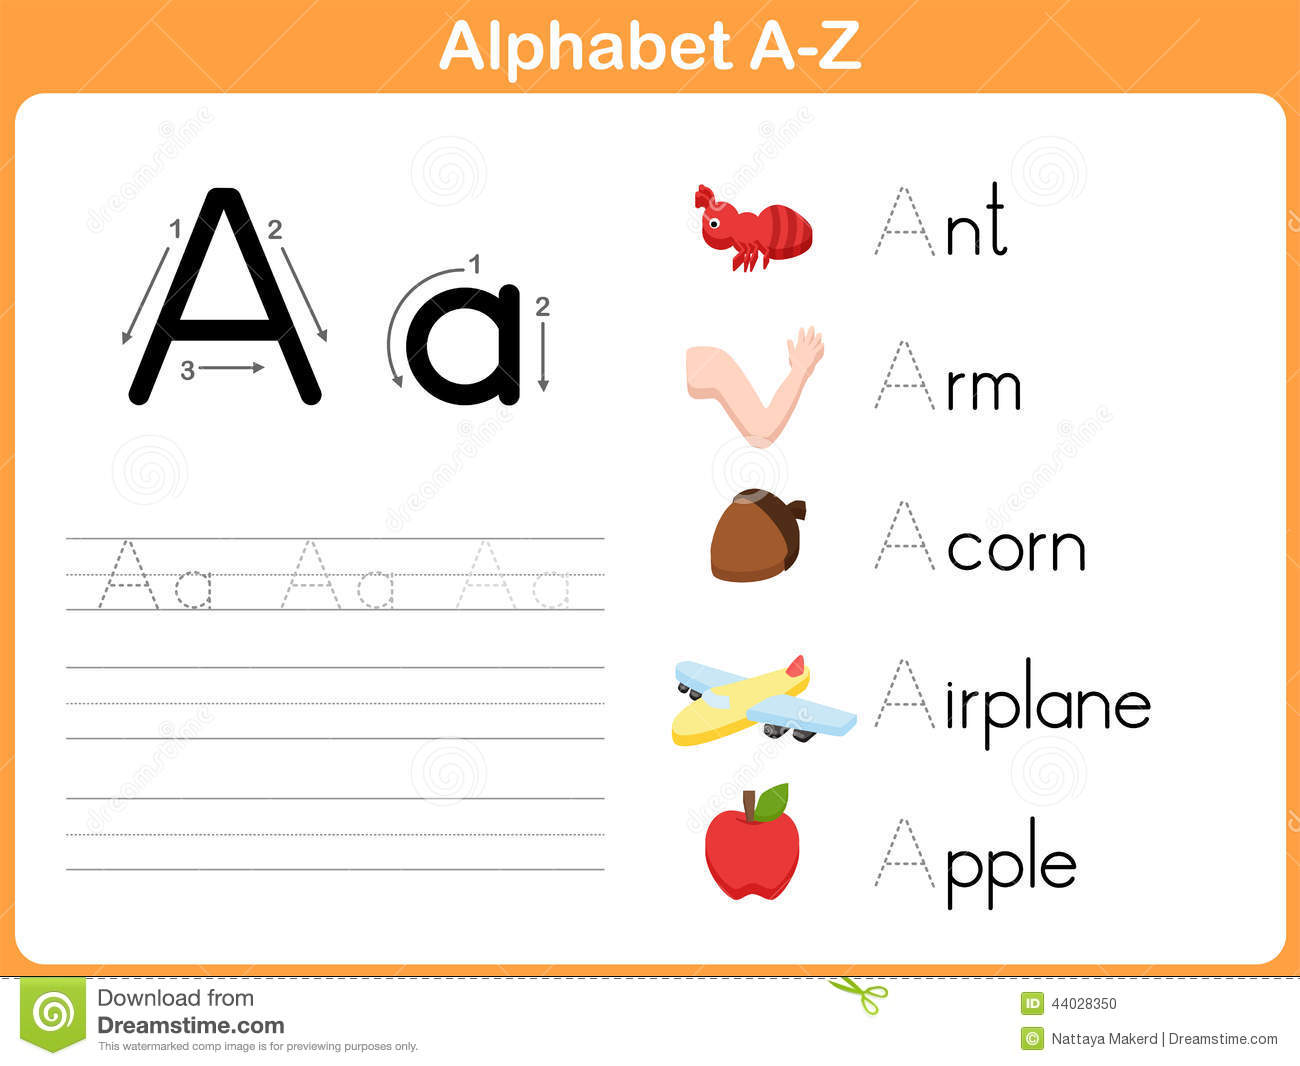 Worksheets Printable Alphabet Worksheets A-z alphabet tracing worksheet stock vector illustration of literacy writing a z